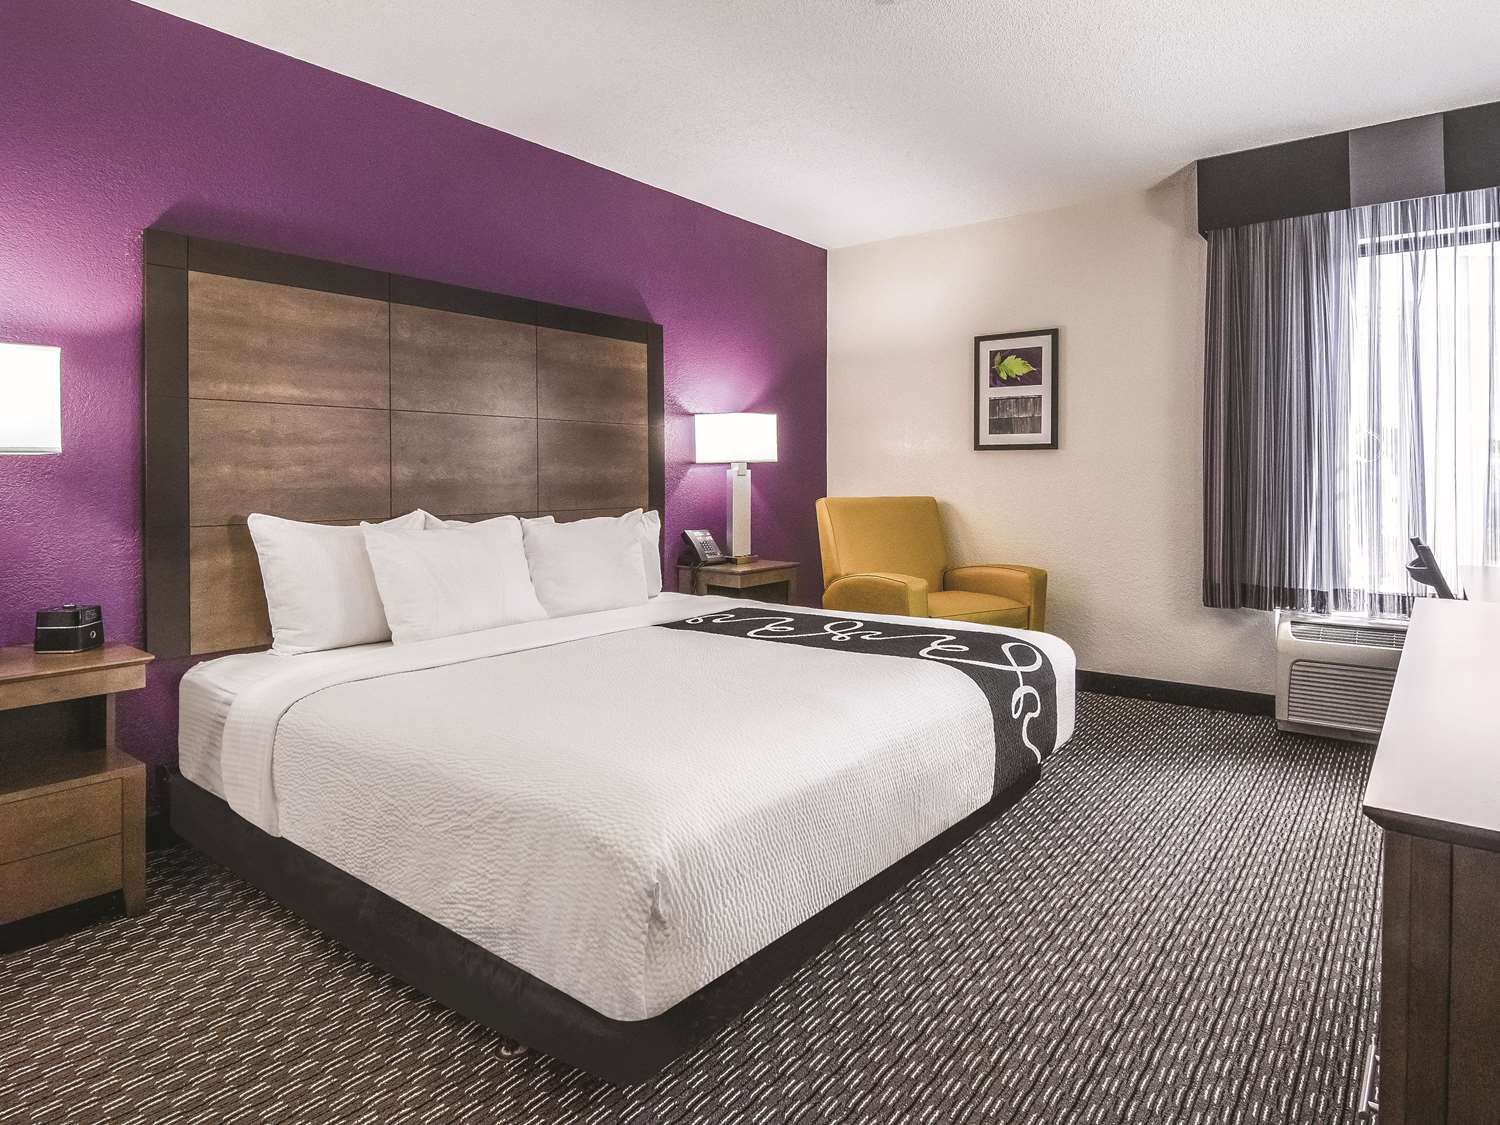 Room - La Quinta Inn & Suites at 48th Ave Myrtle Beach